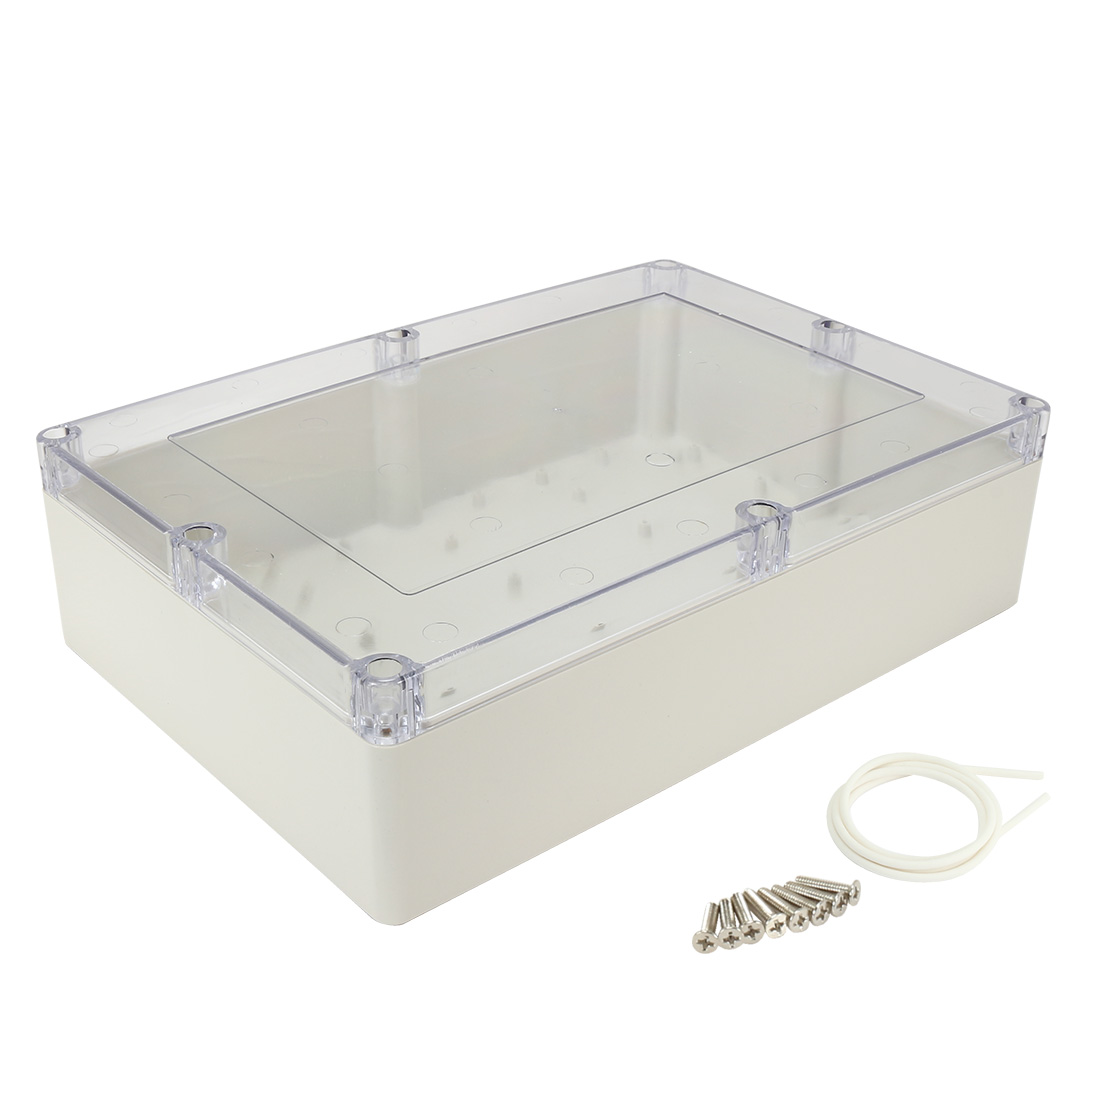 """15""""x10.2""""x4.1""""(380mmx260mmx105mm) ABS Junction Box Universal Project Enclosure w PC Transparent Cover"""